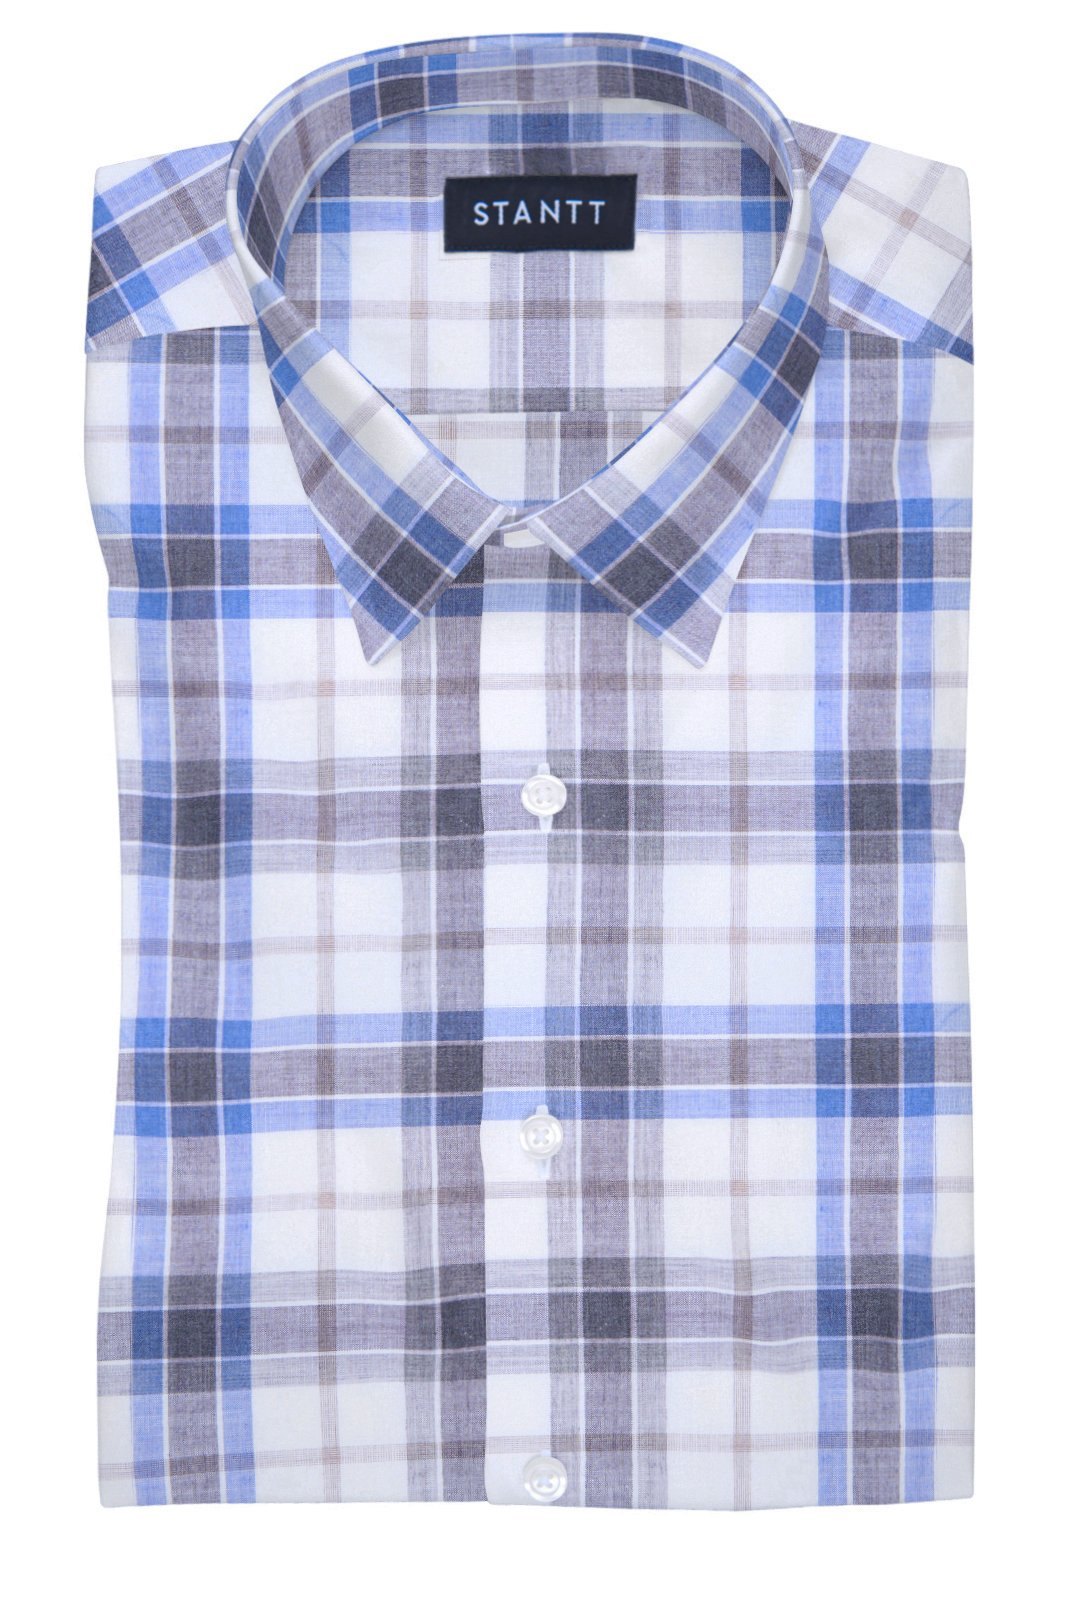 Melange Smoke Blue Plaid: Semi-Spread Collar, Barrel Cuff